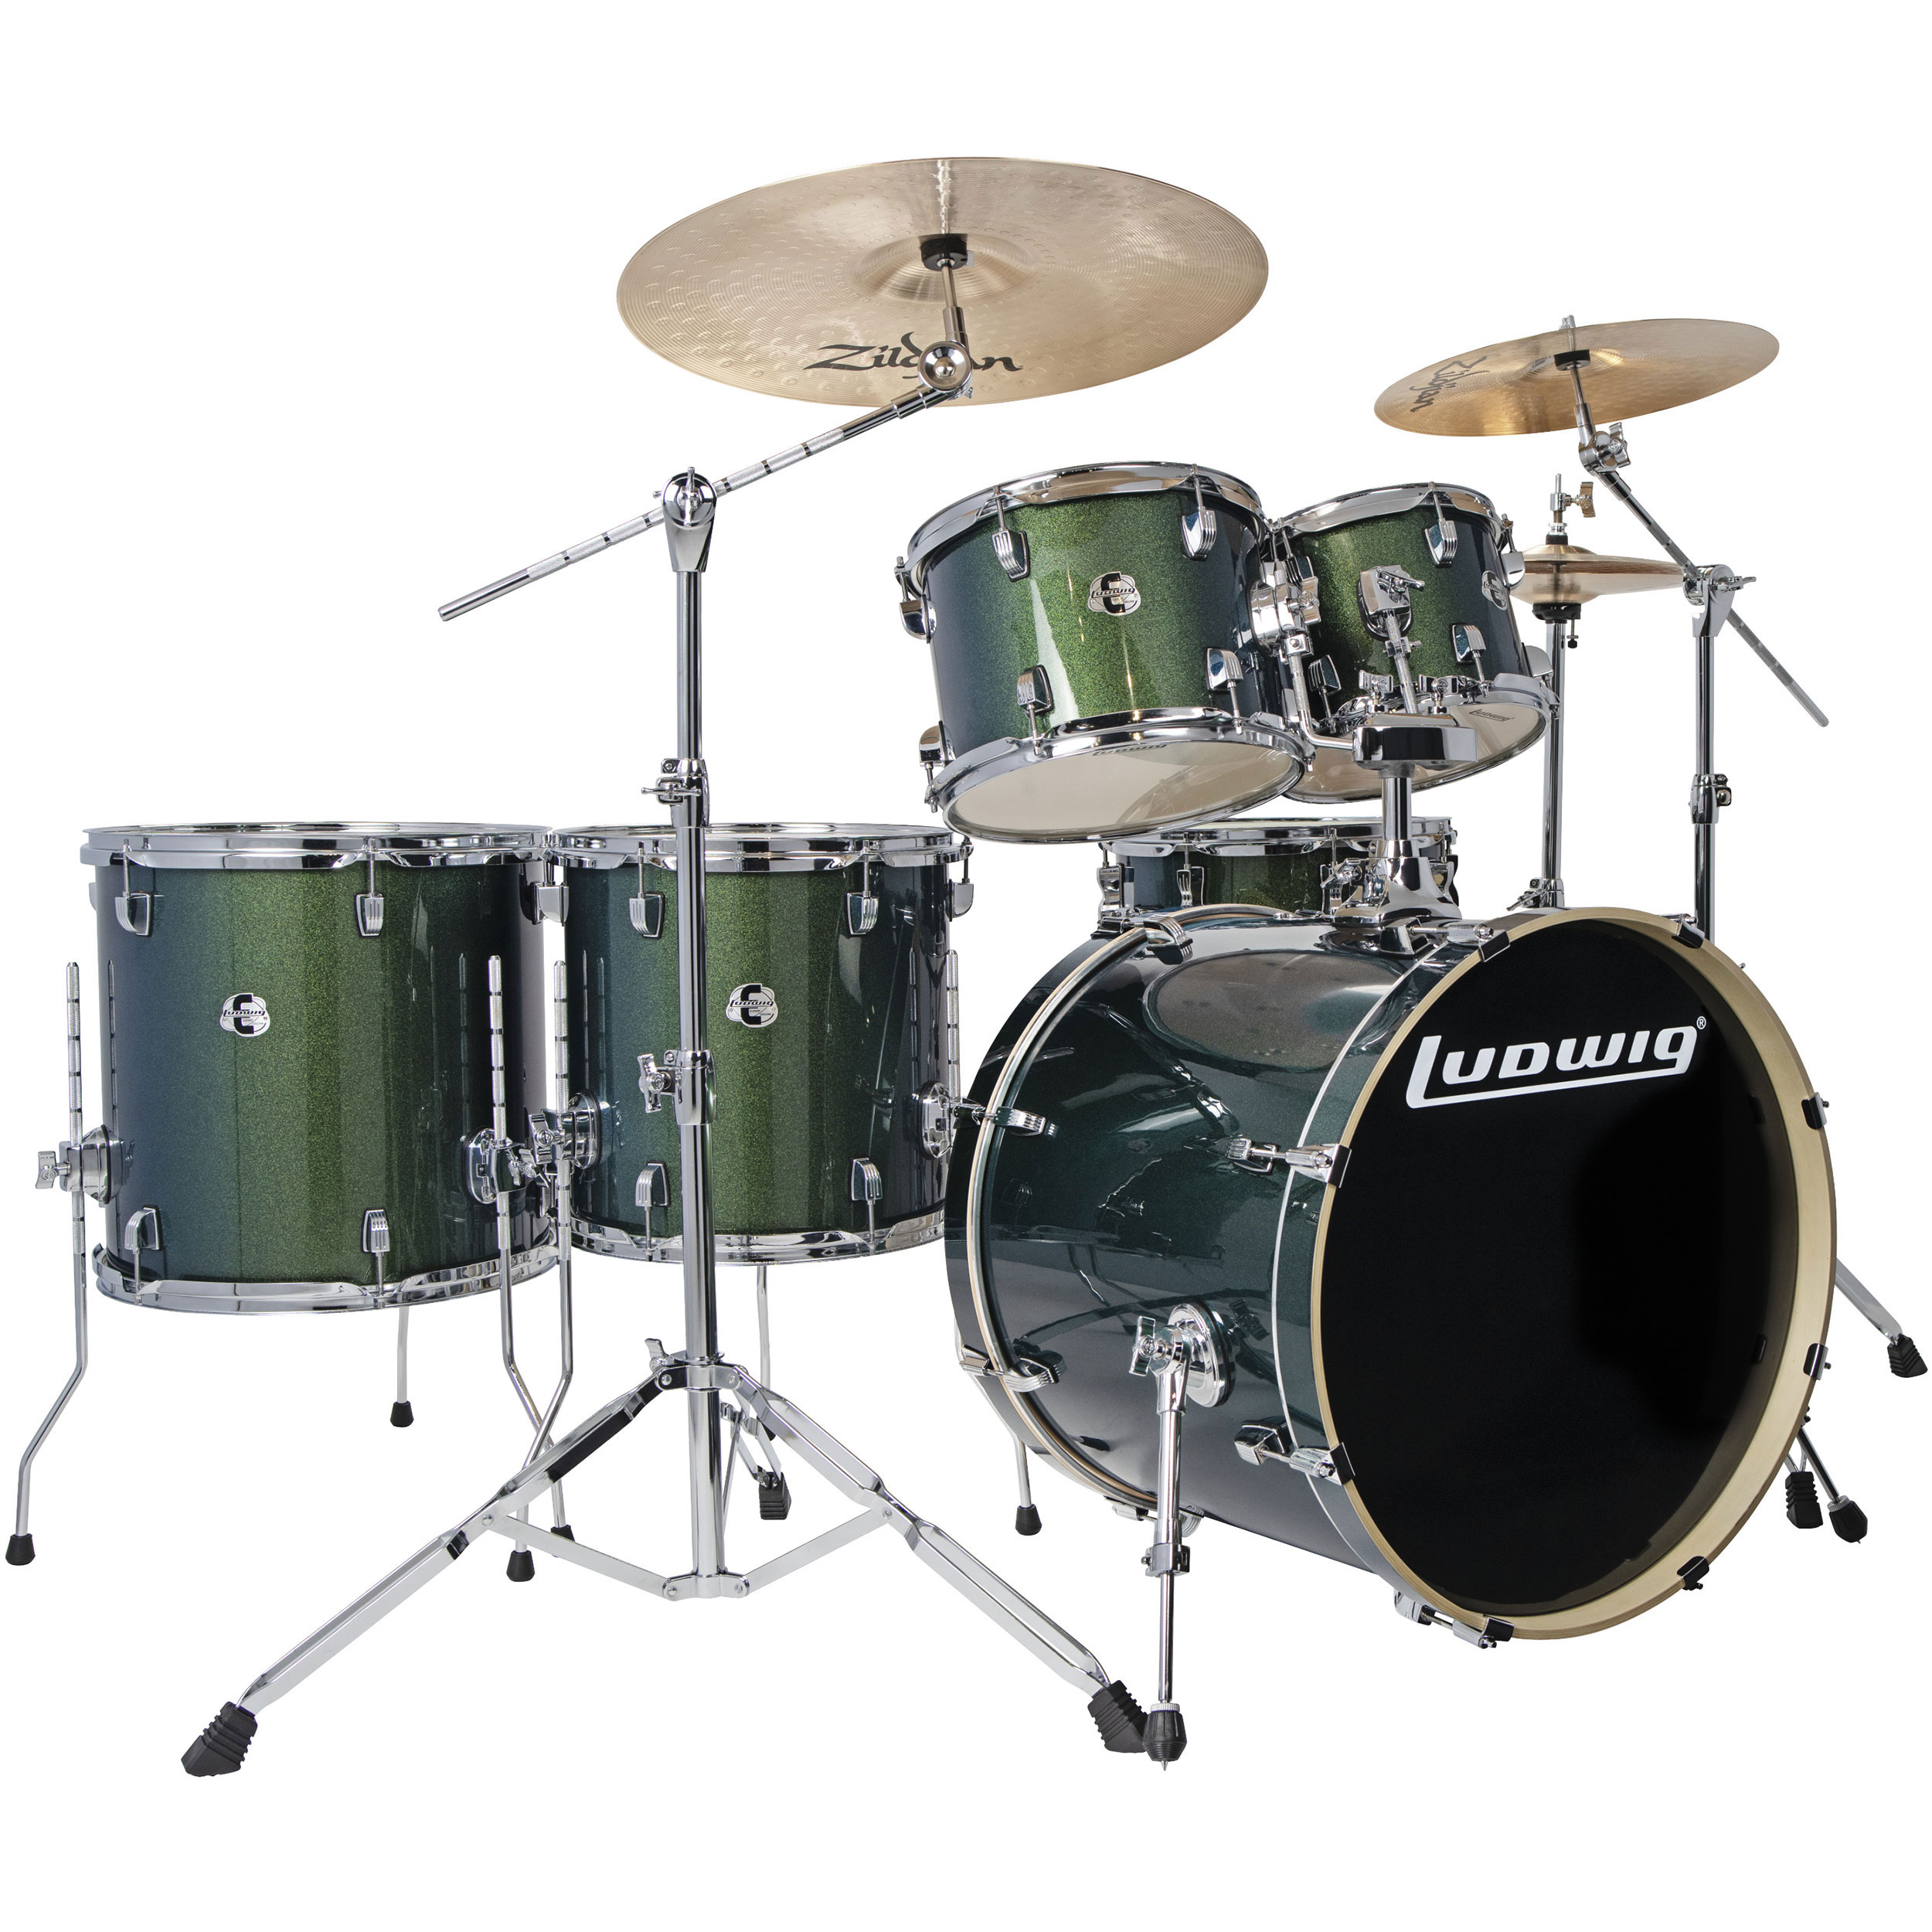 "Ludwig Evolution 6-Piece Drum Set with Hardware & Zildjian I Series Cymbals (22"" Bass, 10/12/14/16"" Toms, 14"" Snare)"